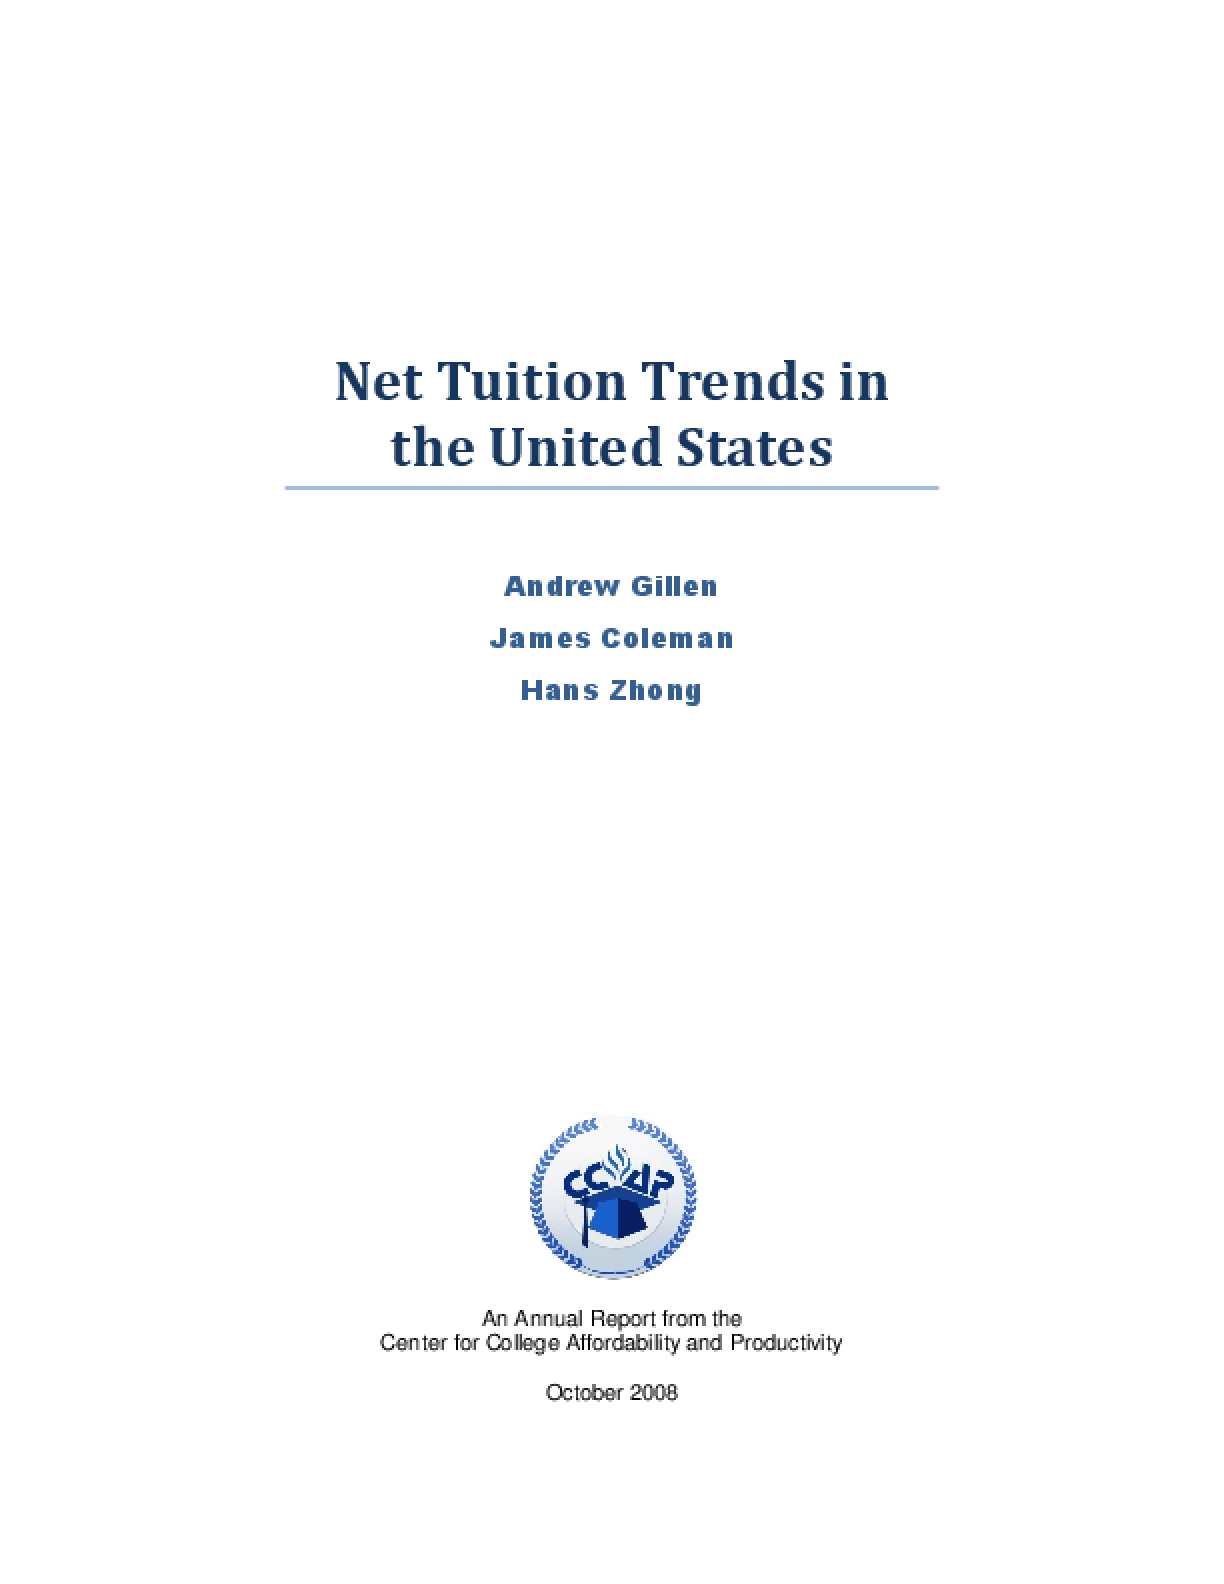 Net Tuition Trends in the United States